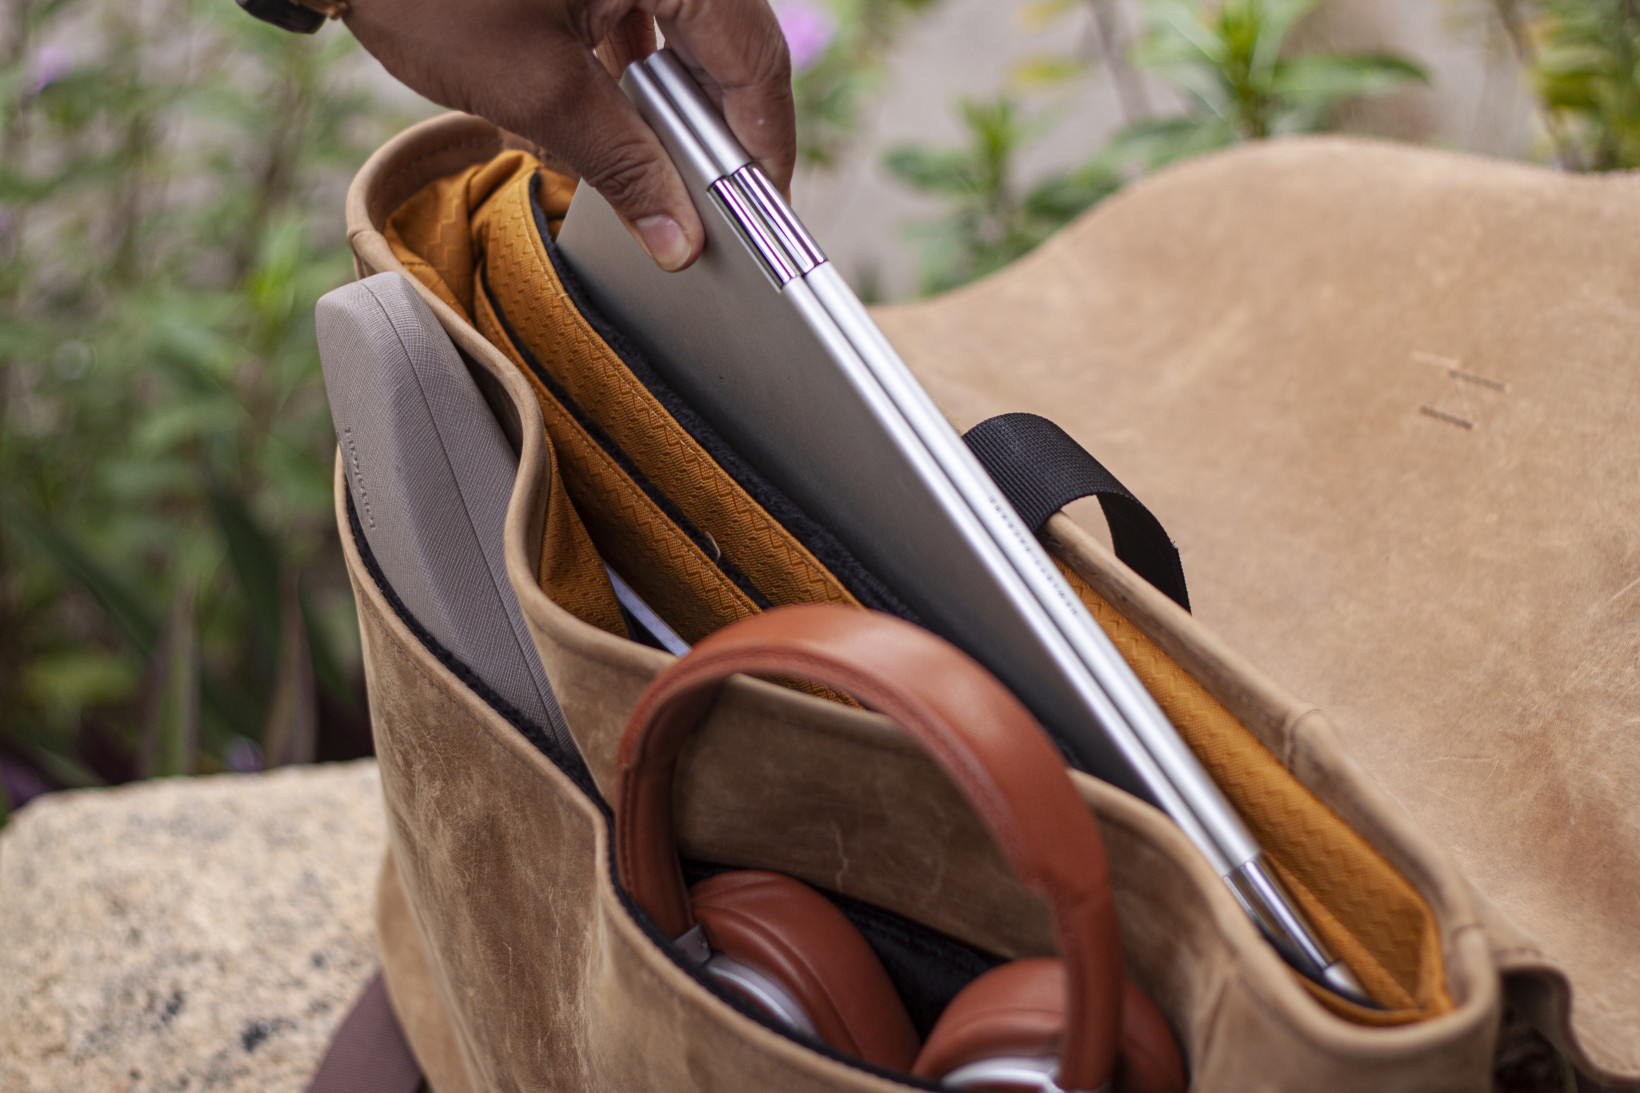 The Waterfield Executive Messenger has a bright gold trim that makes it easy to spot your gadgets, and luxurious pocket lining to snugly store them